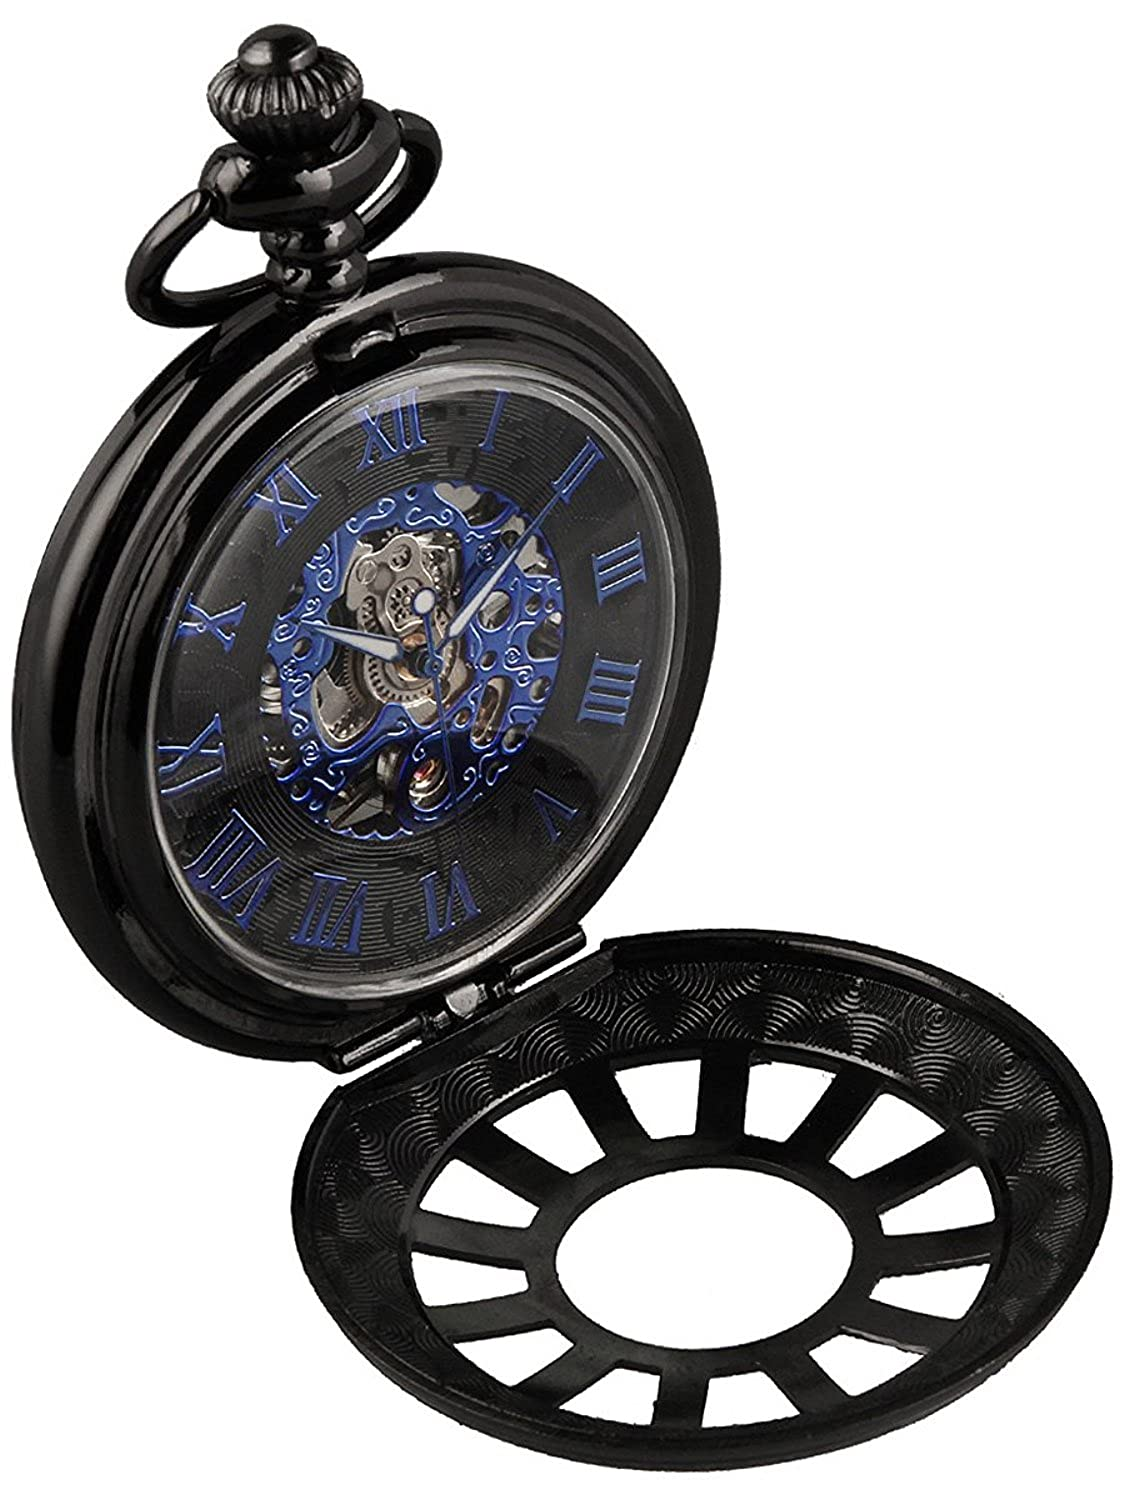 Amazon.com: Carrie Hughes Vintage Blue Hand Steampunk Skeleton Mechanical Pocket Watch with Chain Gift (Black 12 Window): Watches